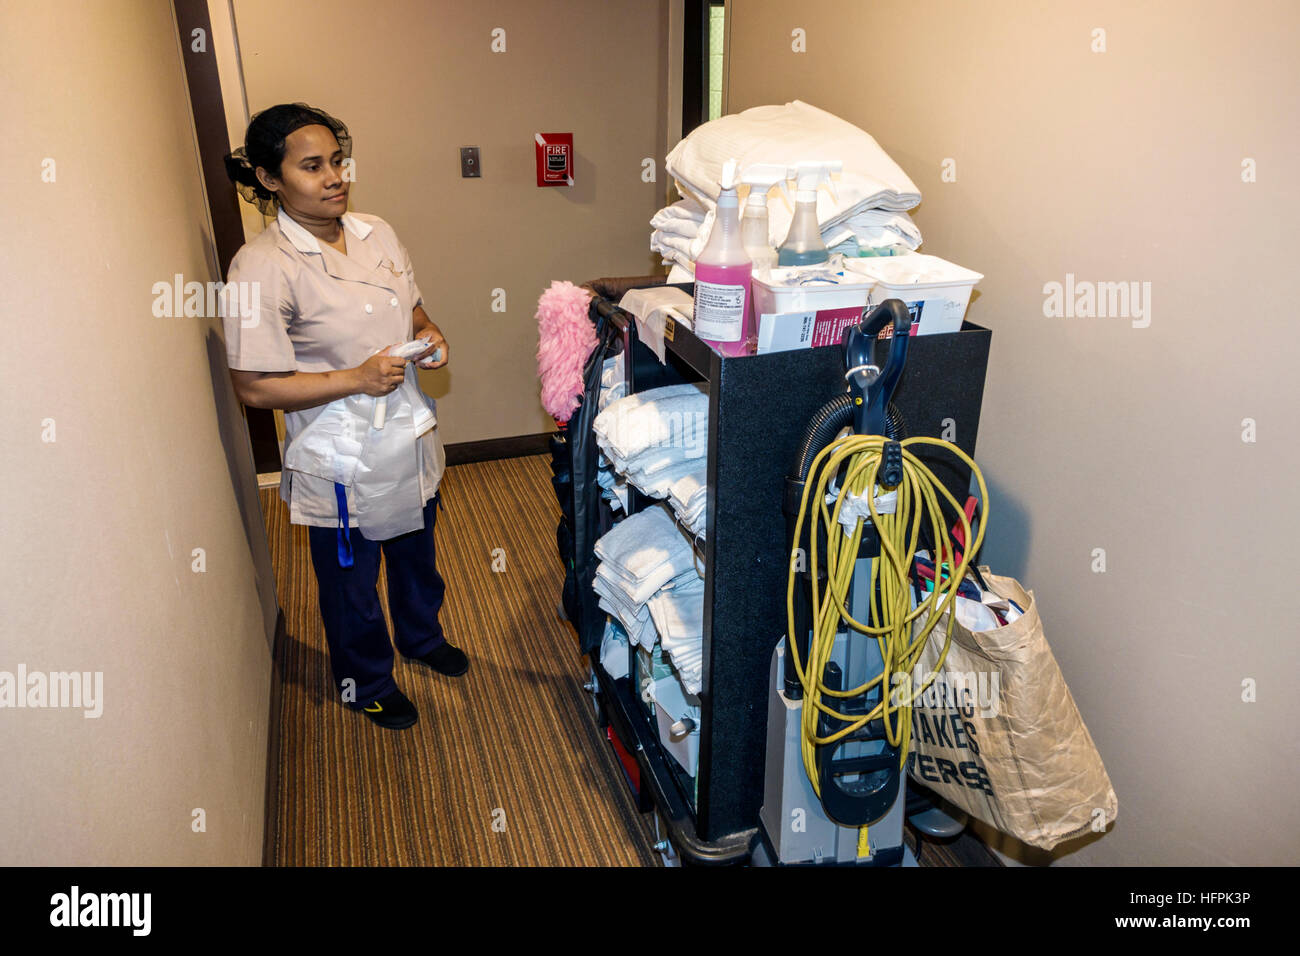 Hotel Maid Jobs Nyc